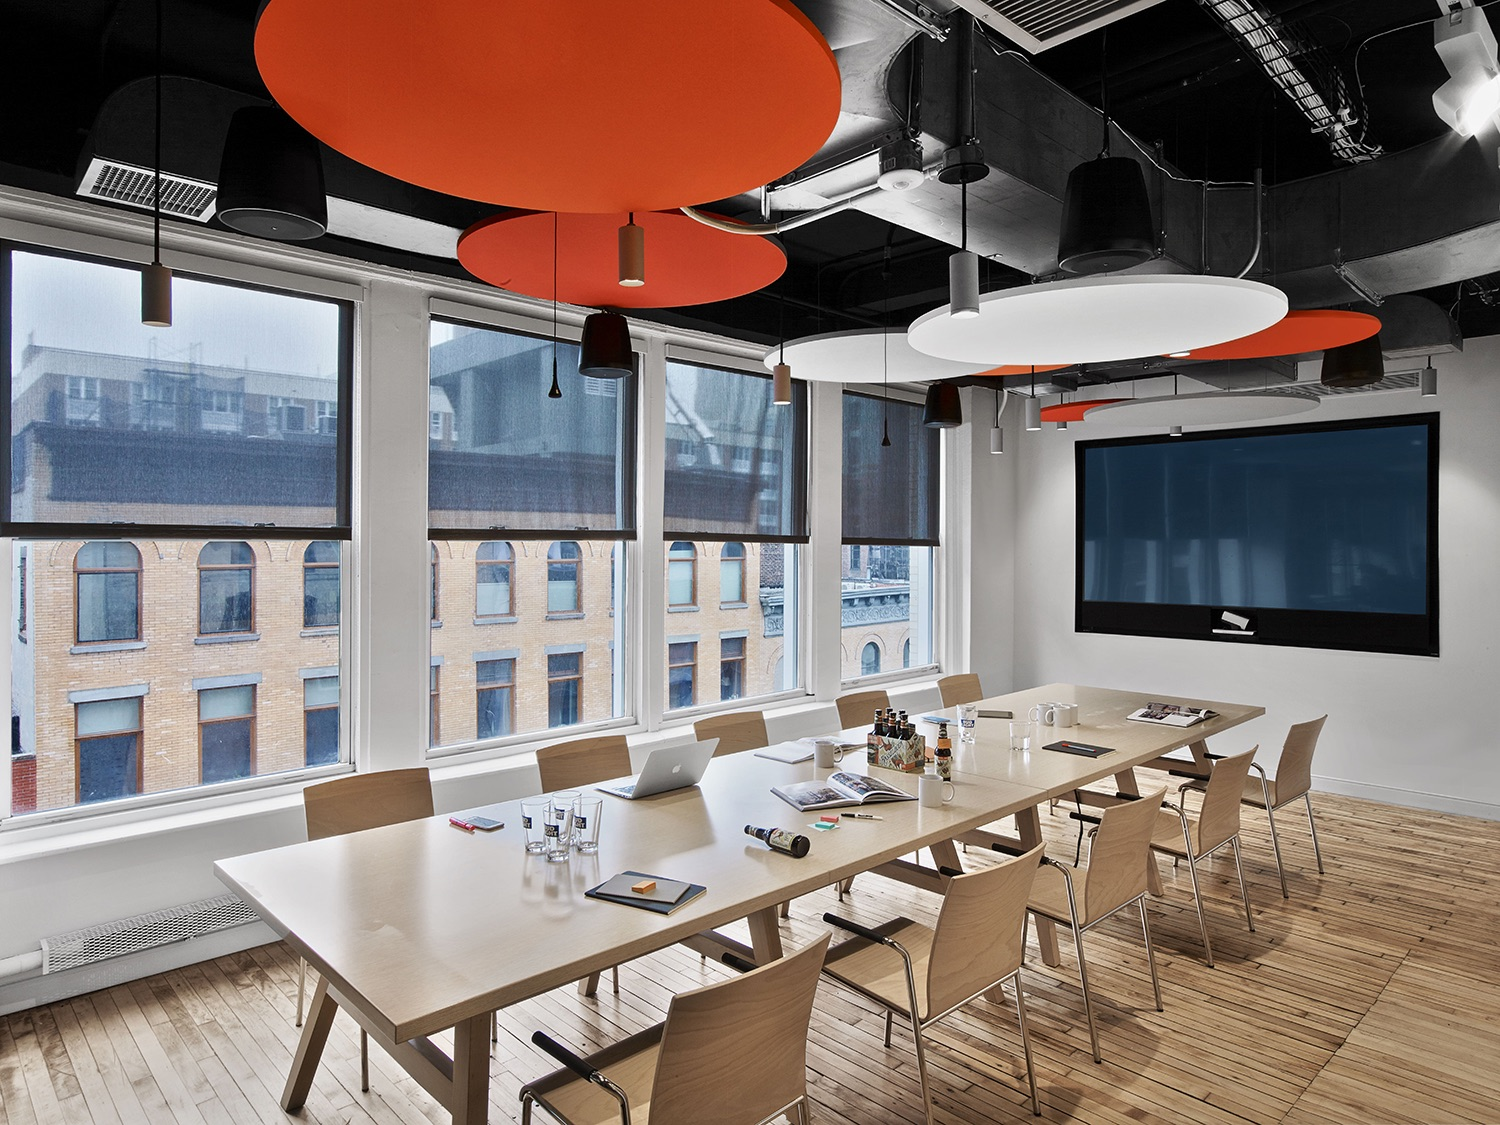 anheuser-busch-nyc-office-11